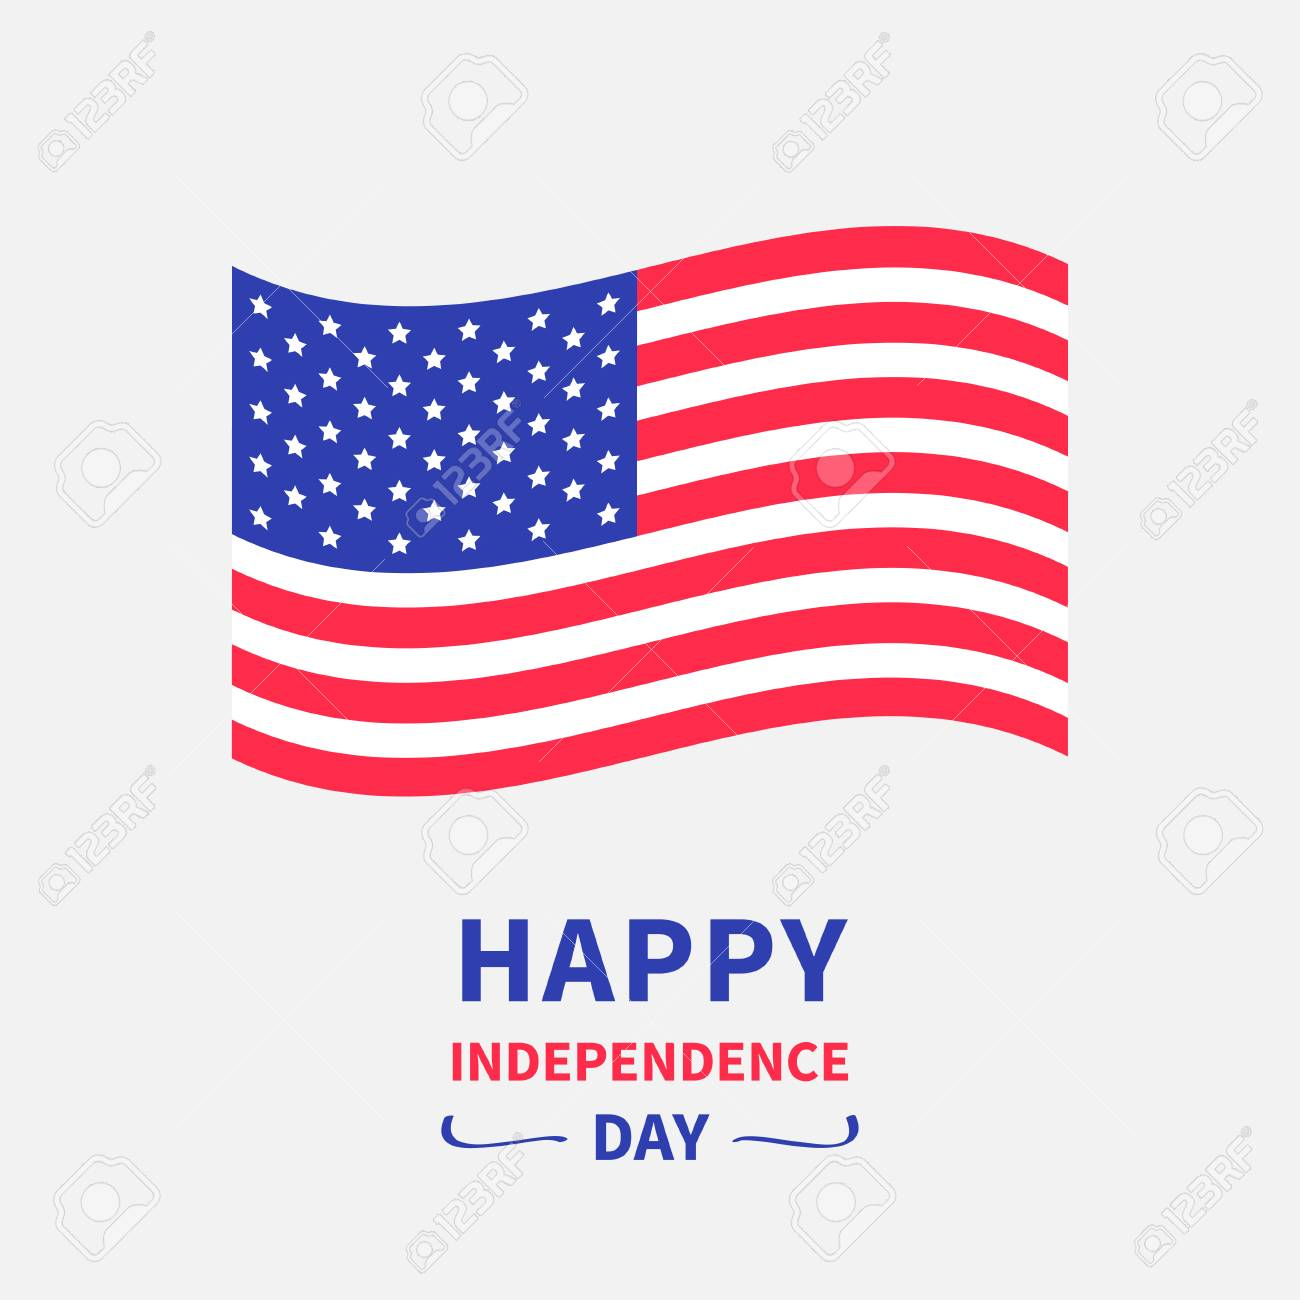 2019 year look- American Happy independence day